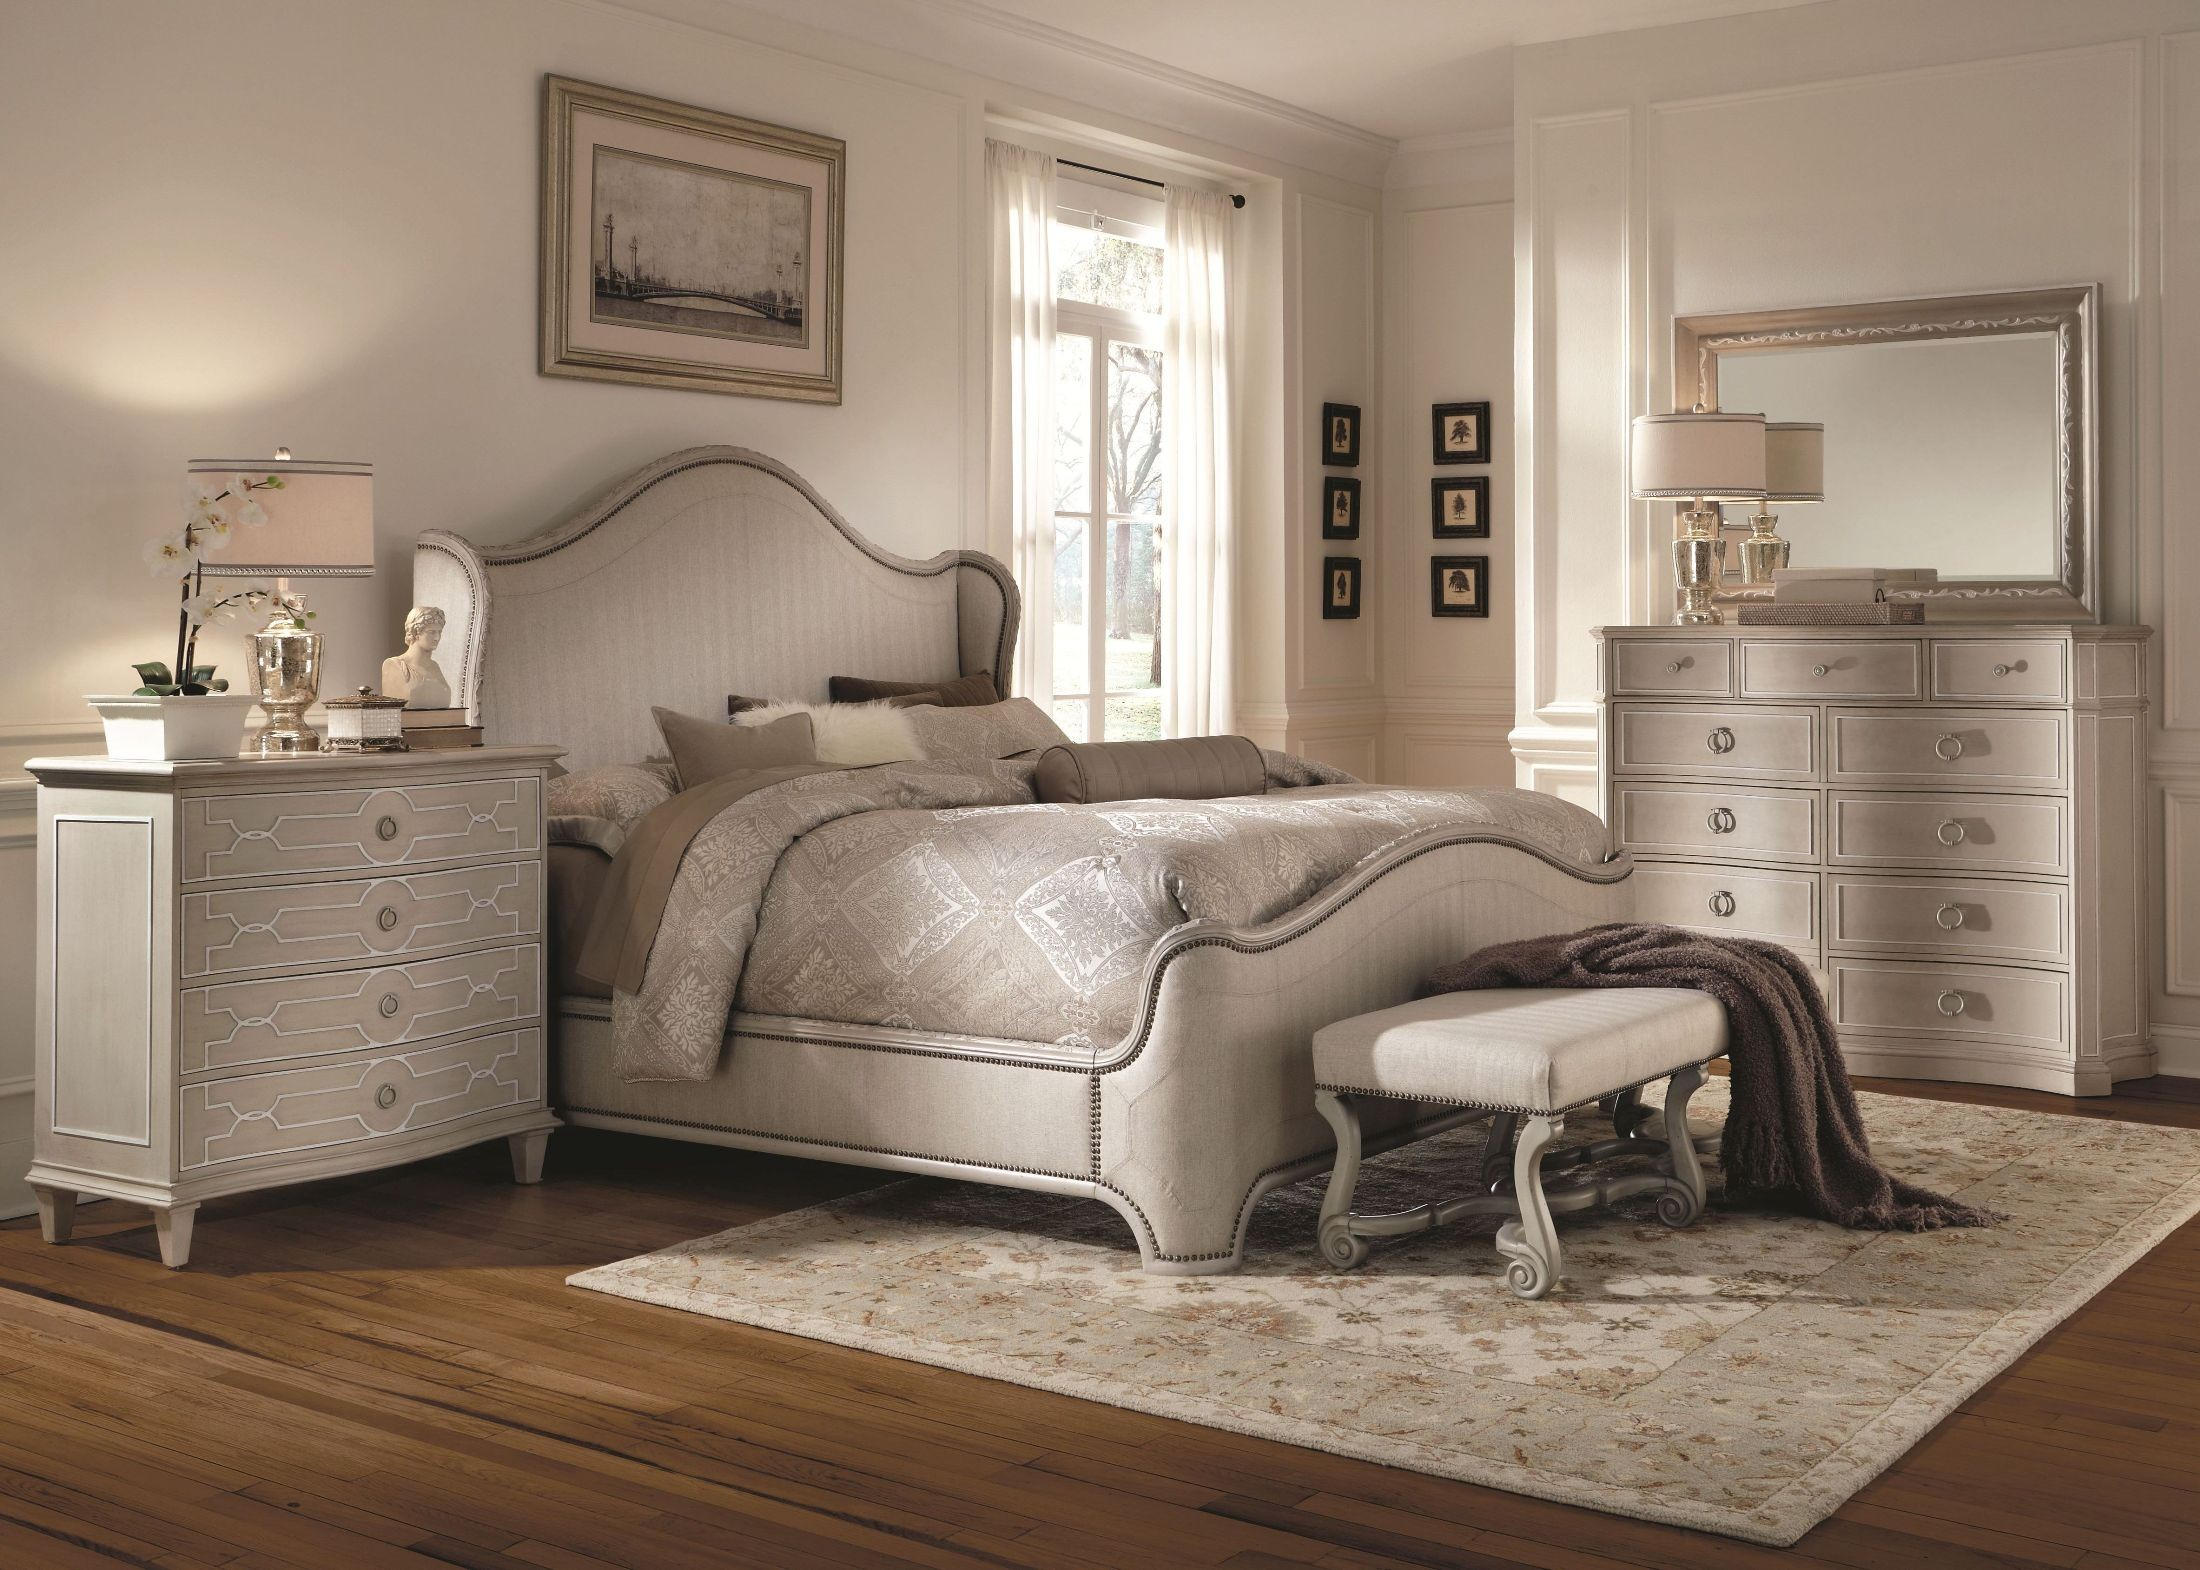 chateaux grey upholstered shelter bedroom set from art coleman furniture. Black Bedroom Furniture Sets. Home Design Ideas